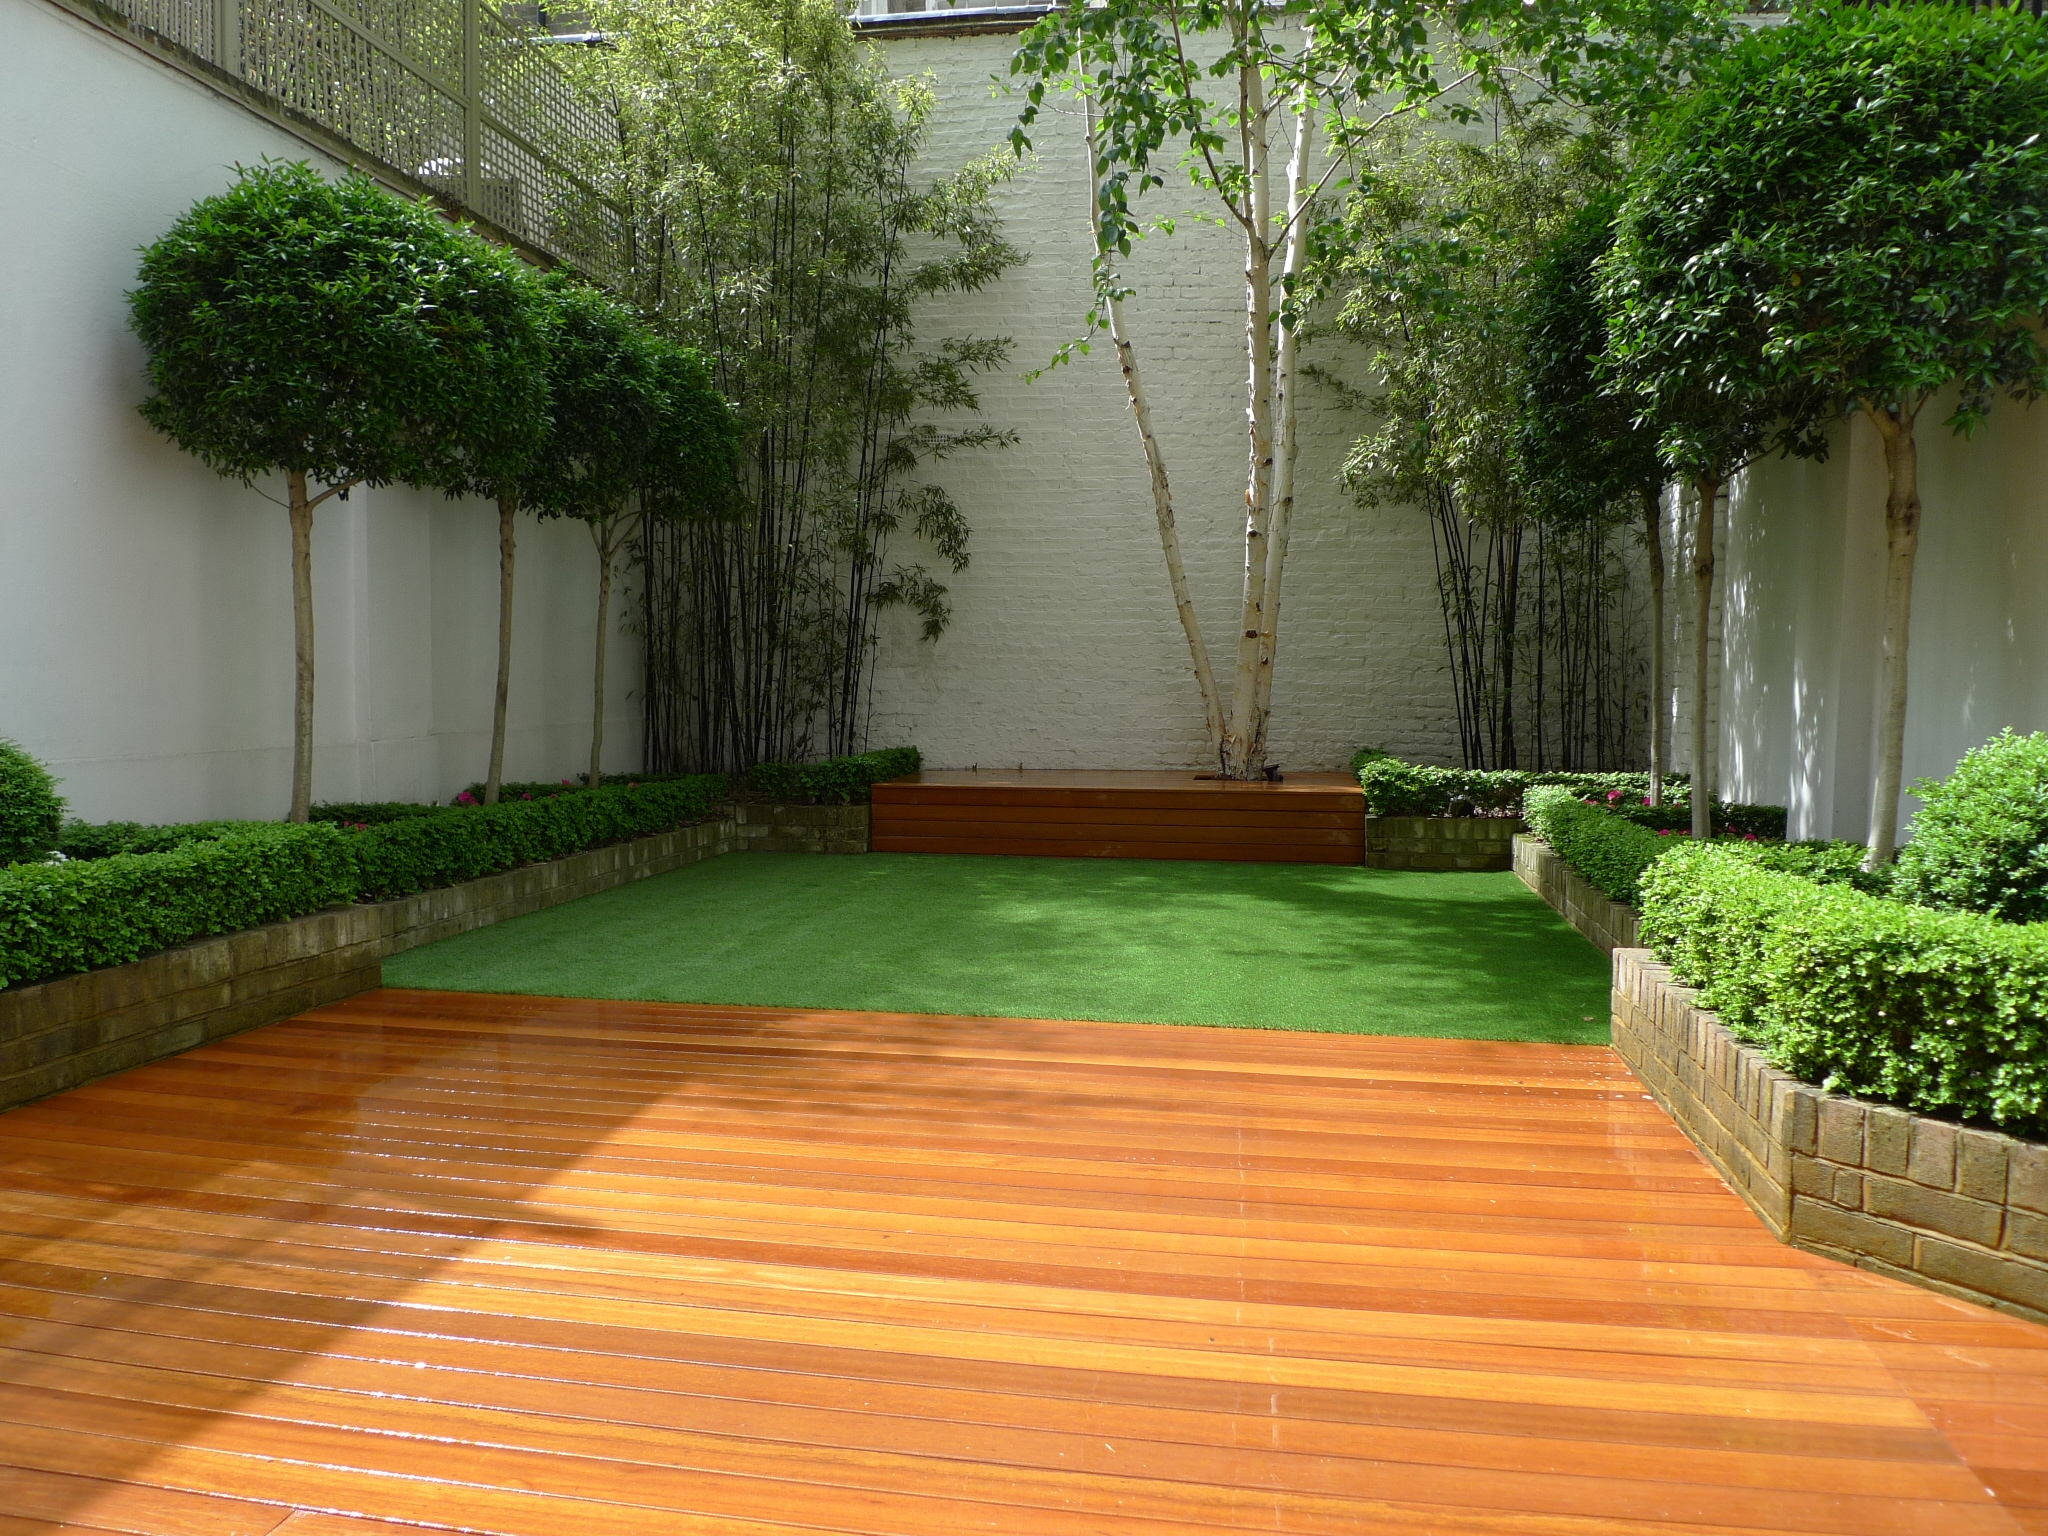 Chelsea garden design hardwood decking artificial grass for Grass design ideas